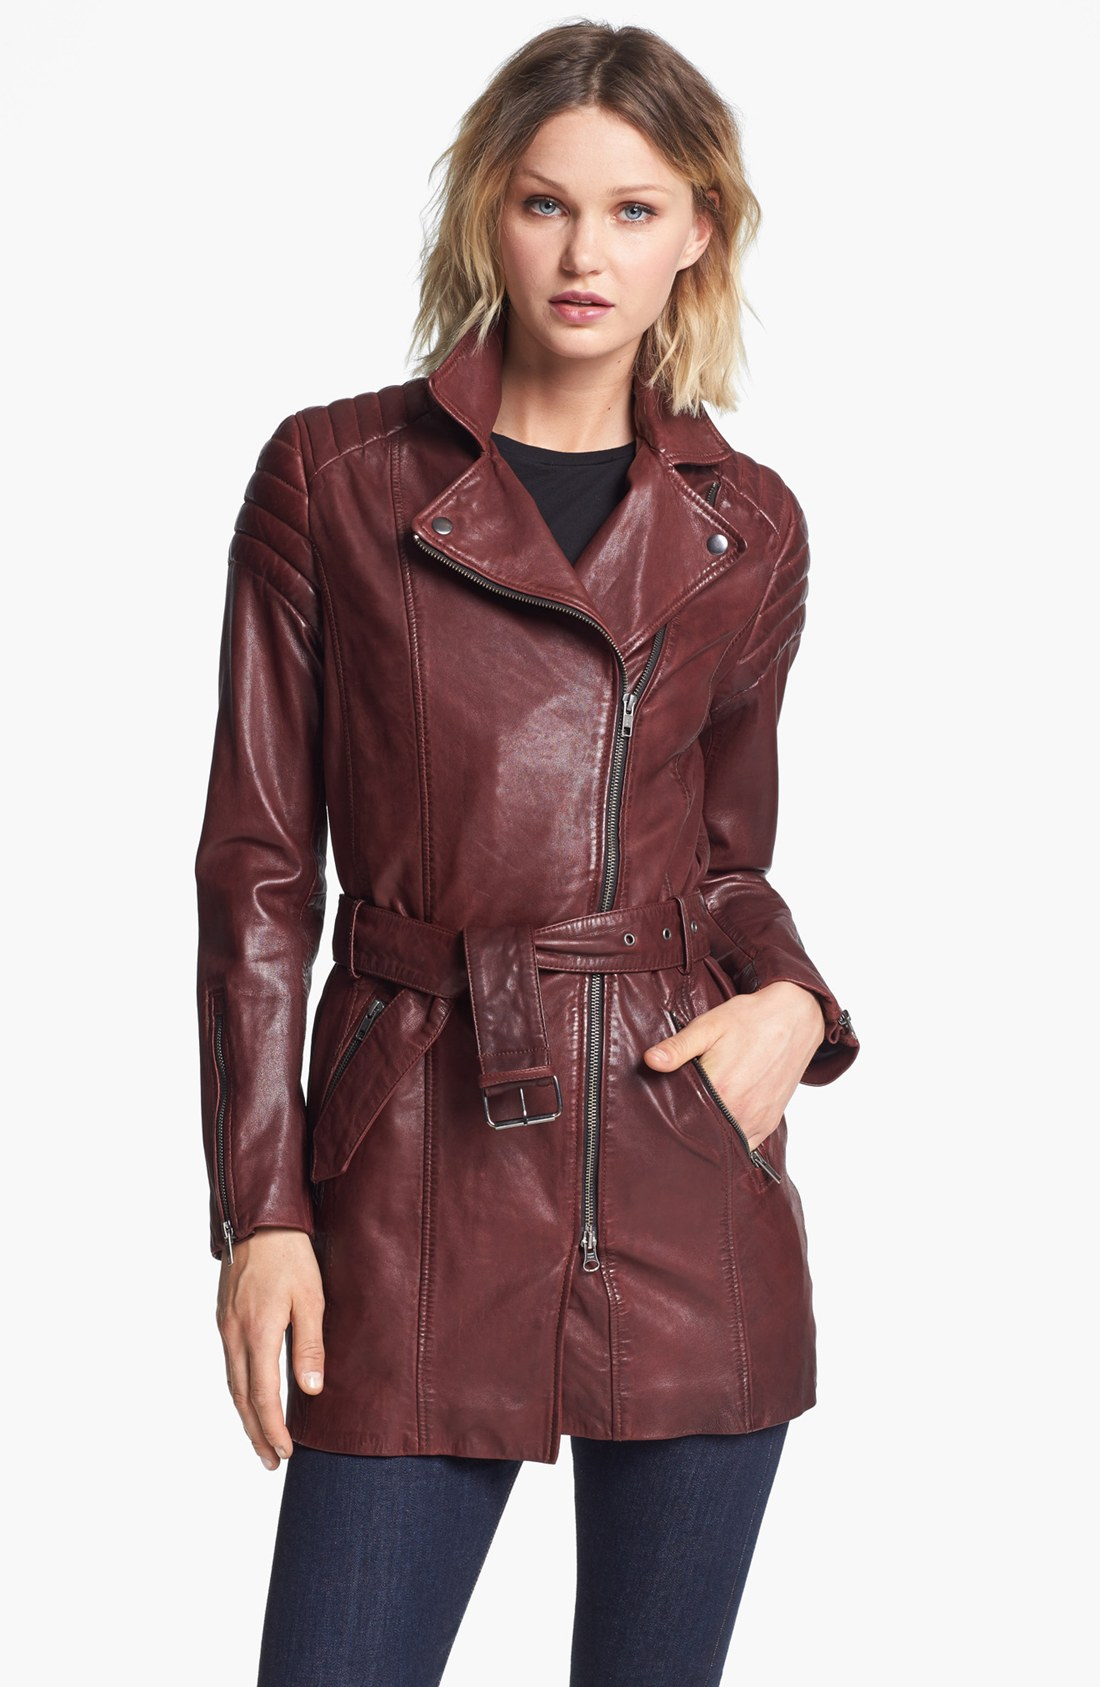 Free shipping and returns on Women's Red Leather & Faux-Leather Jackets at grounwhijwgg.cf